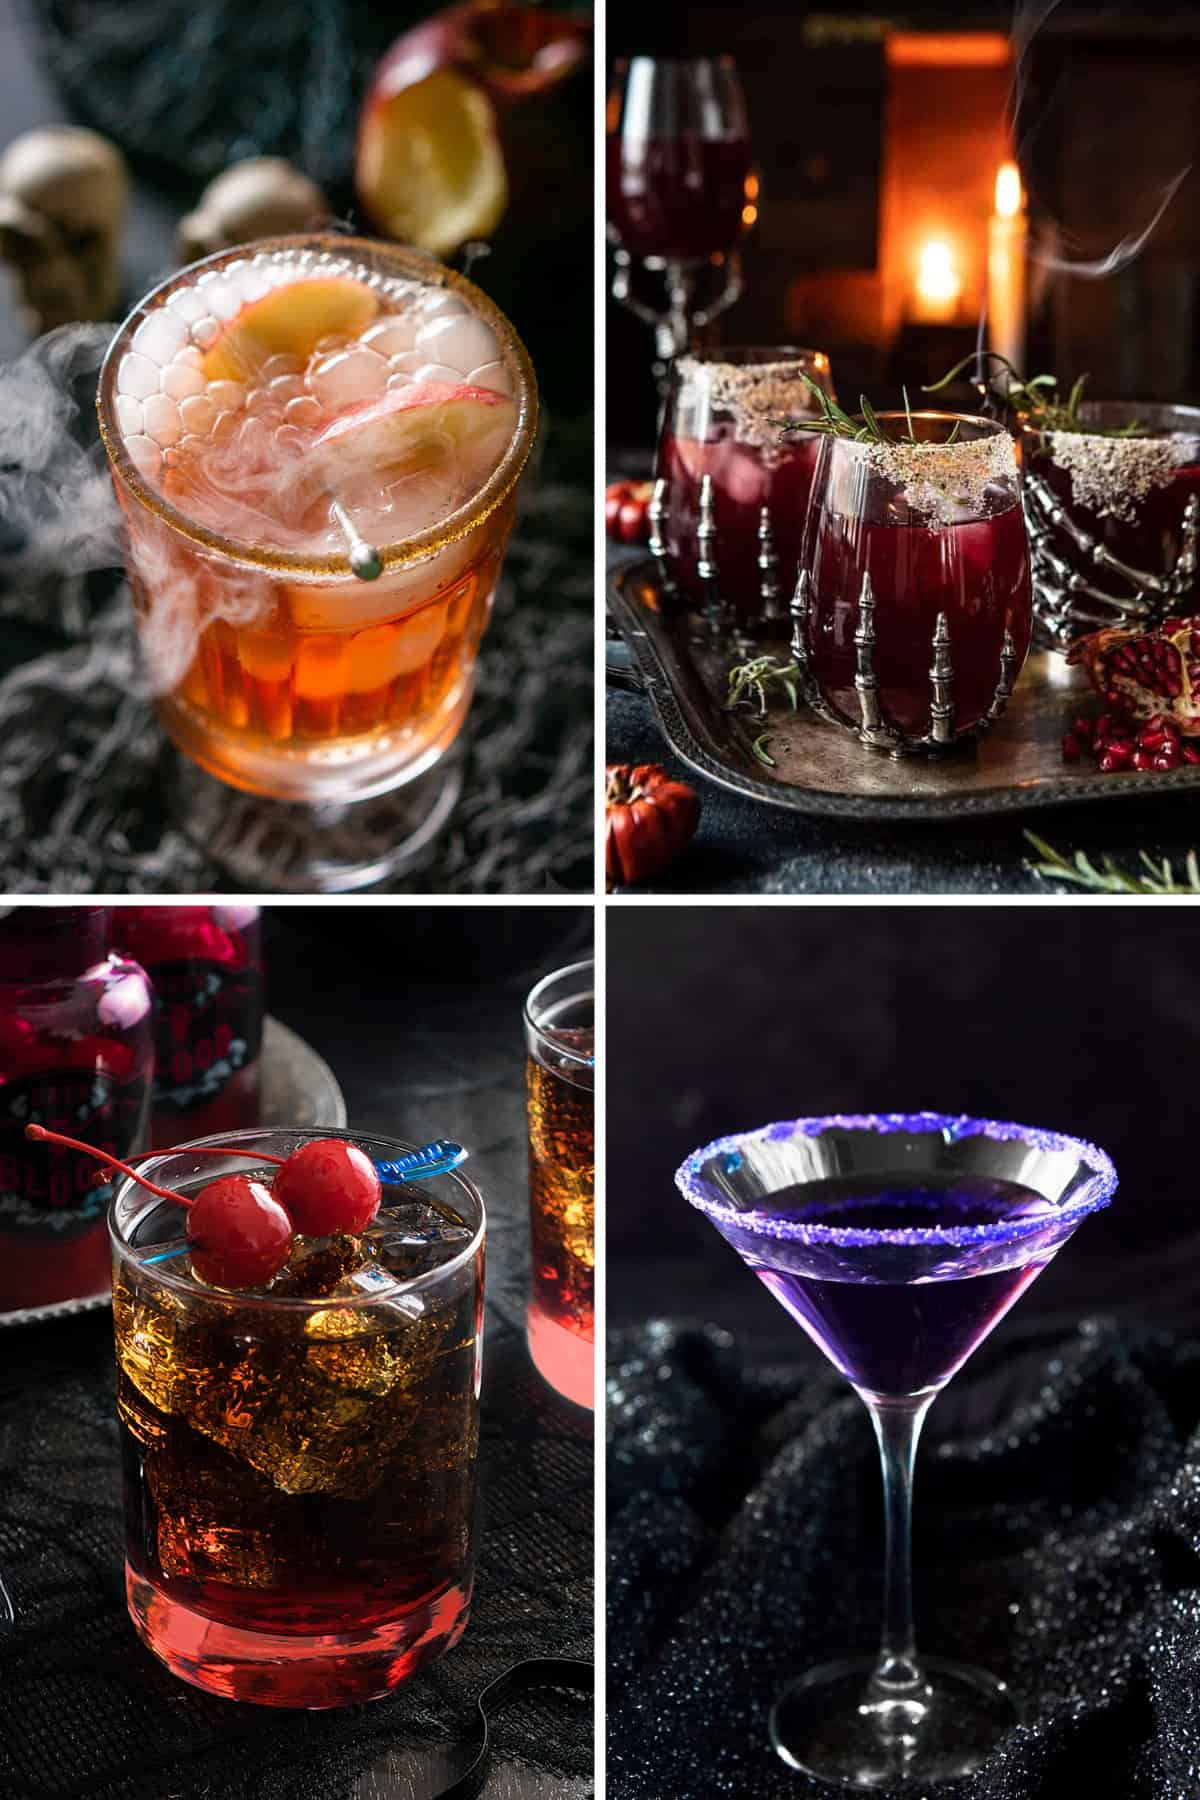 Collage of Halloween cocktails including apple cider, purple people eater martini, and pomegranate punch.